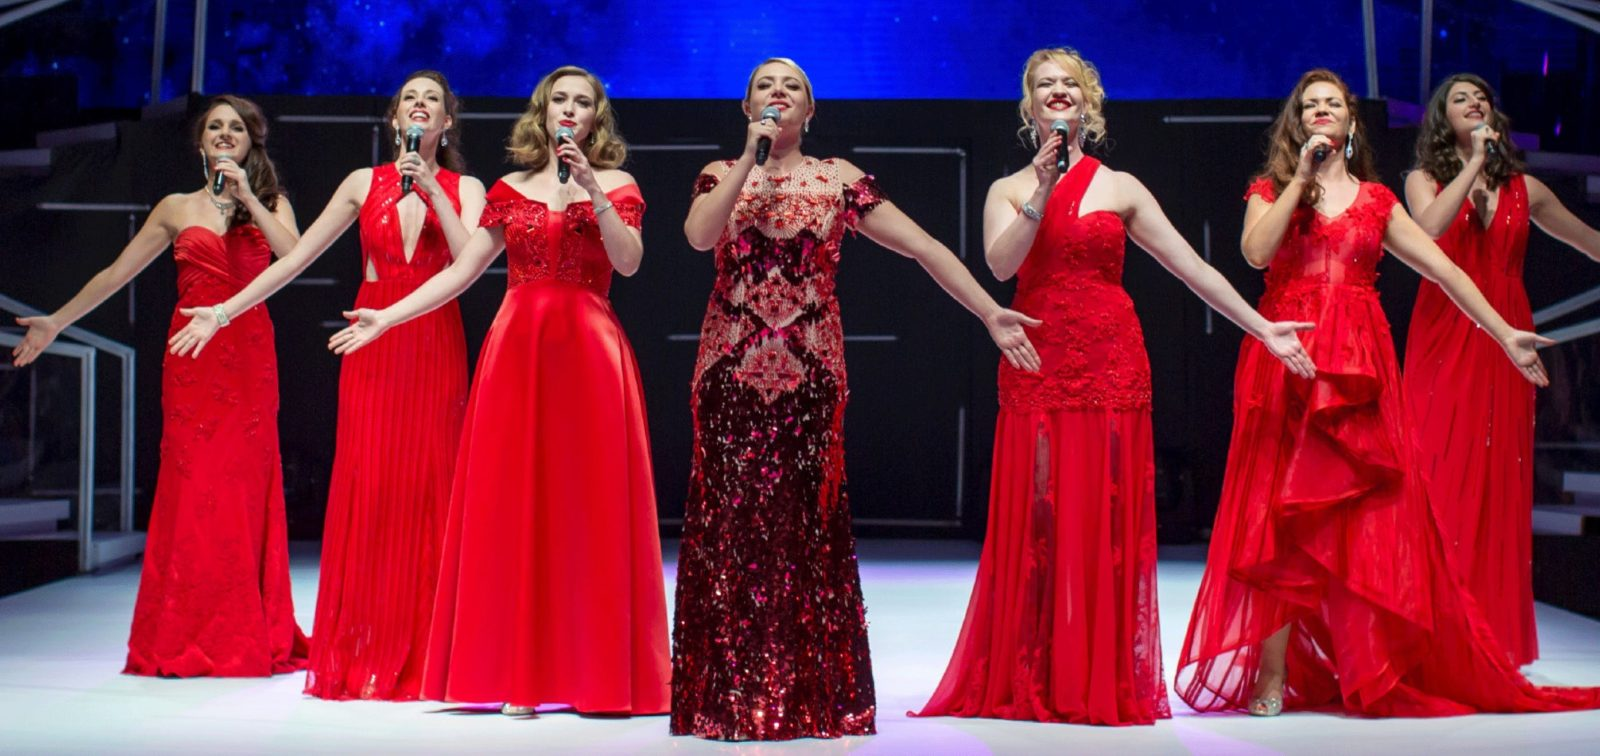 The 7 Sopranos performing in their signature red gowns